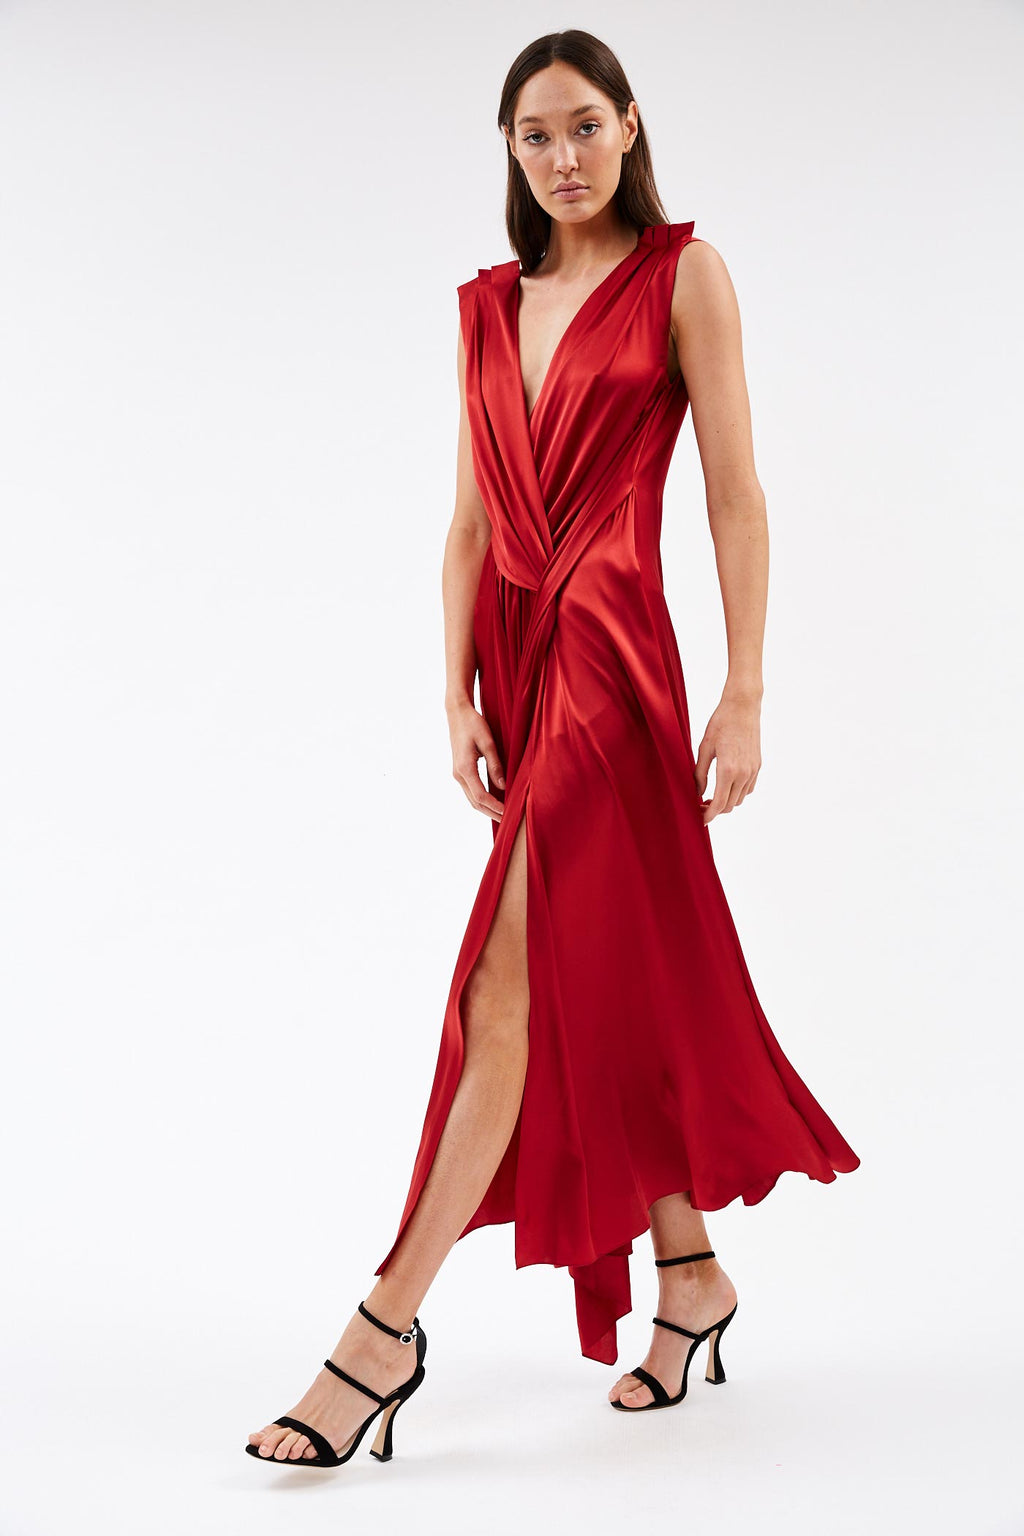 Aria Ruby Dress